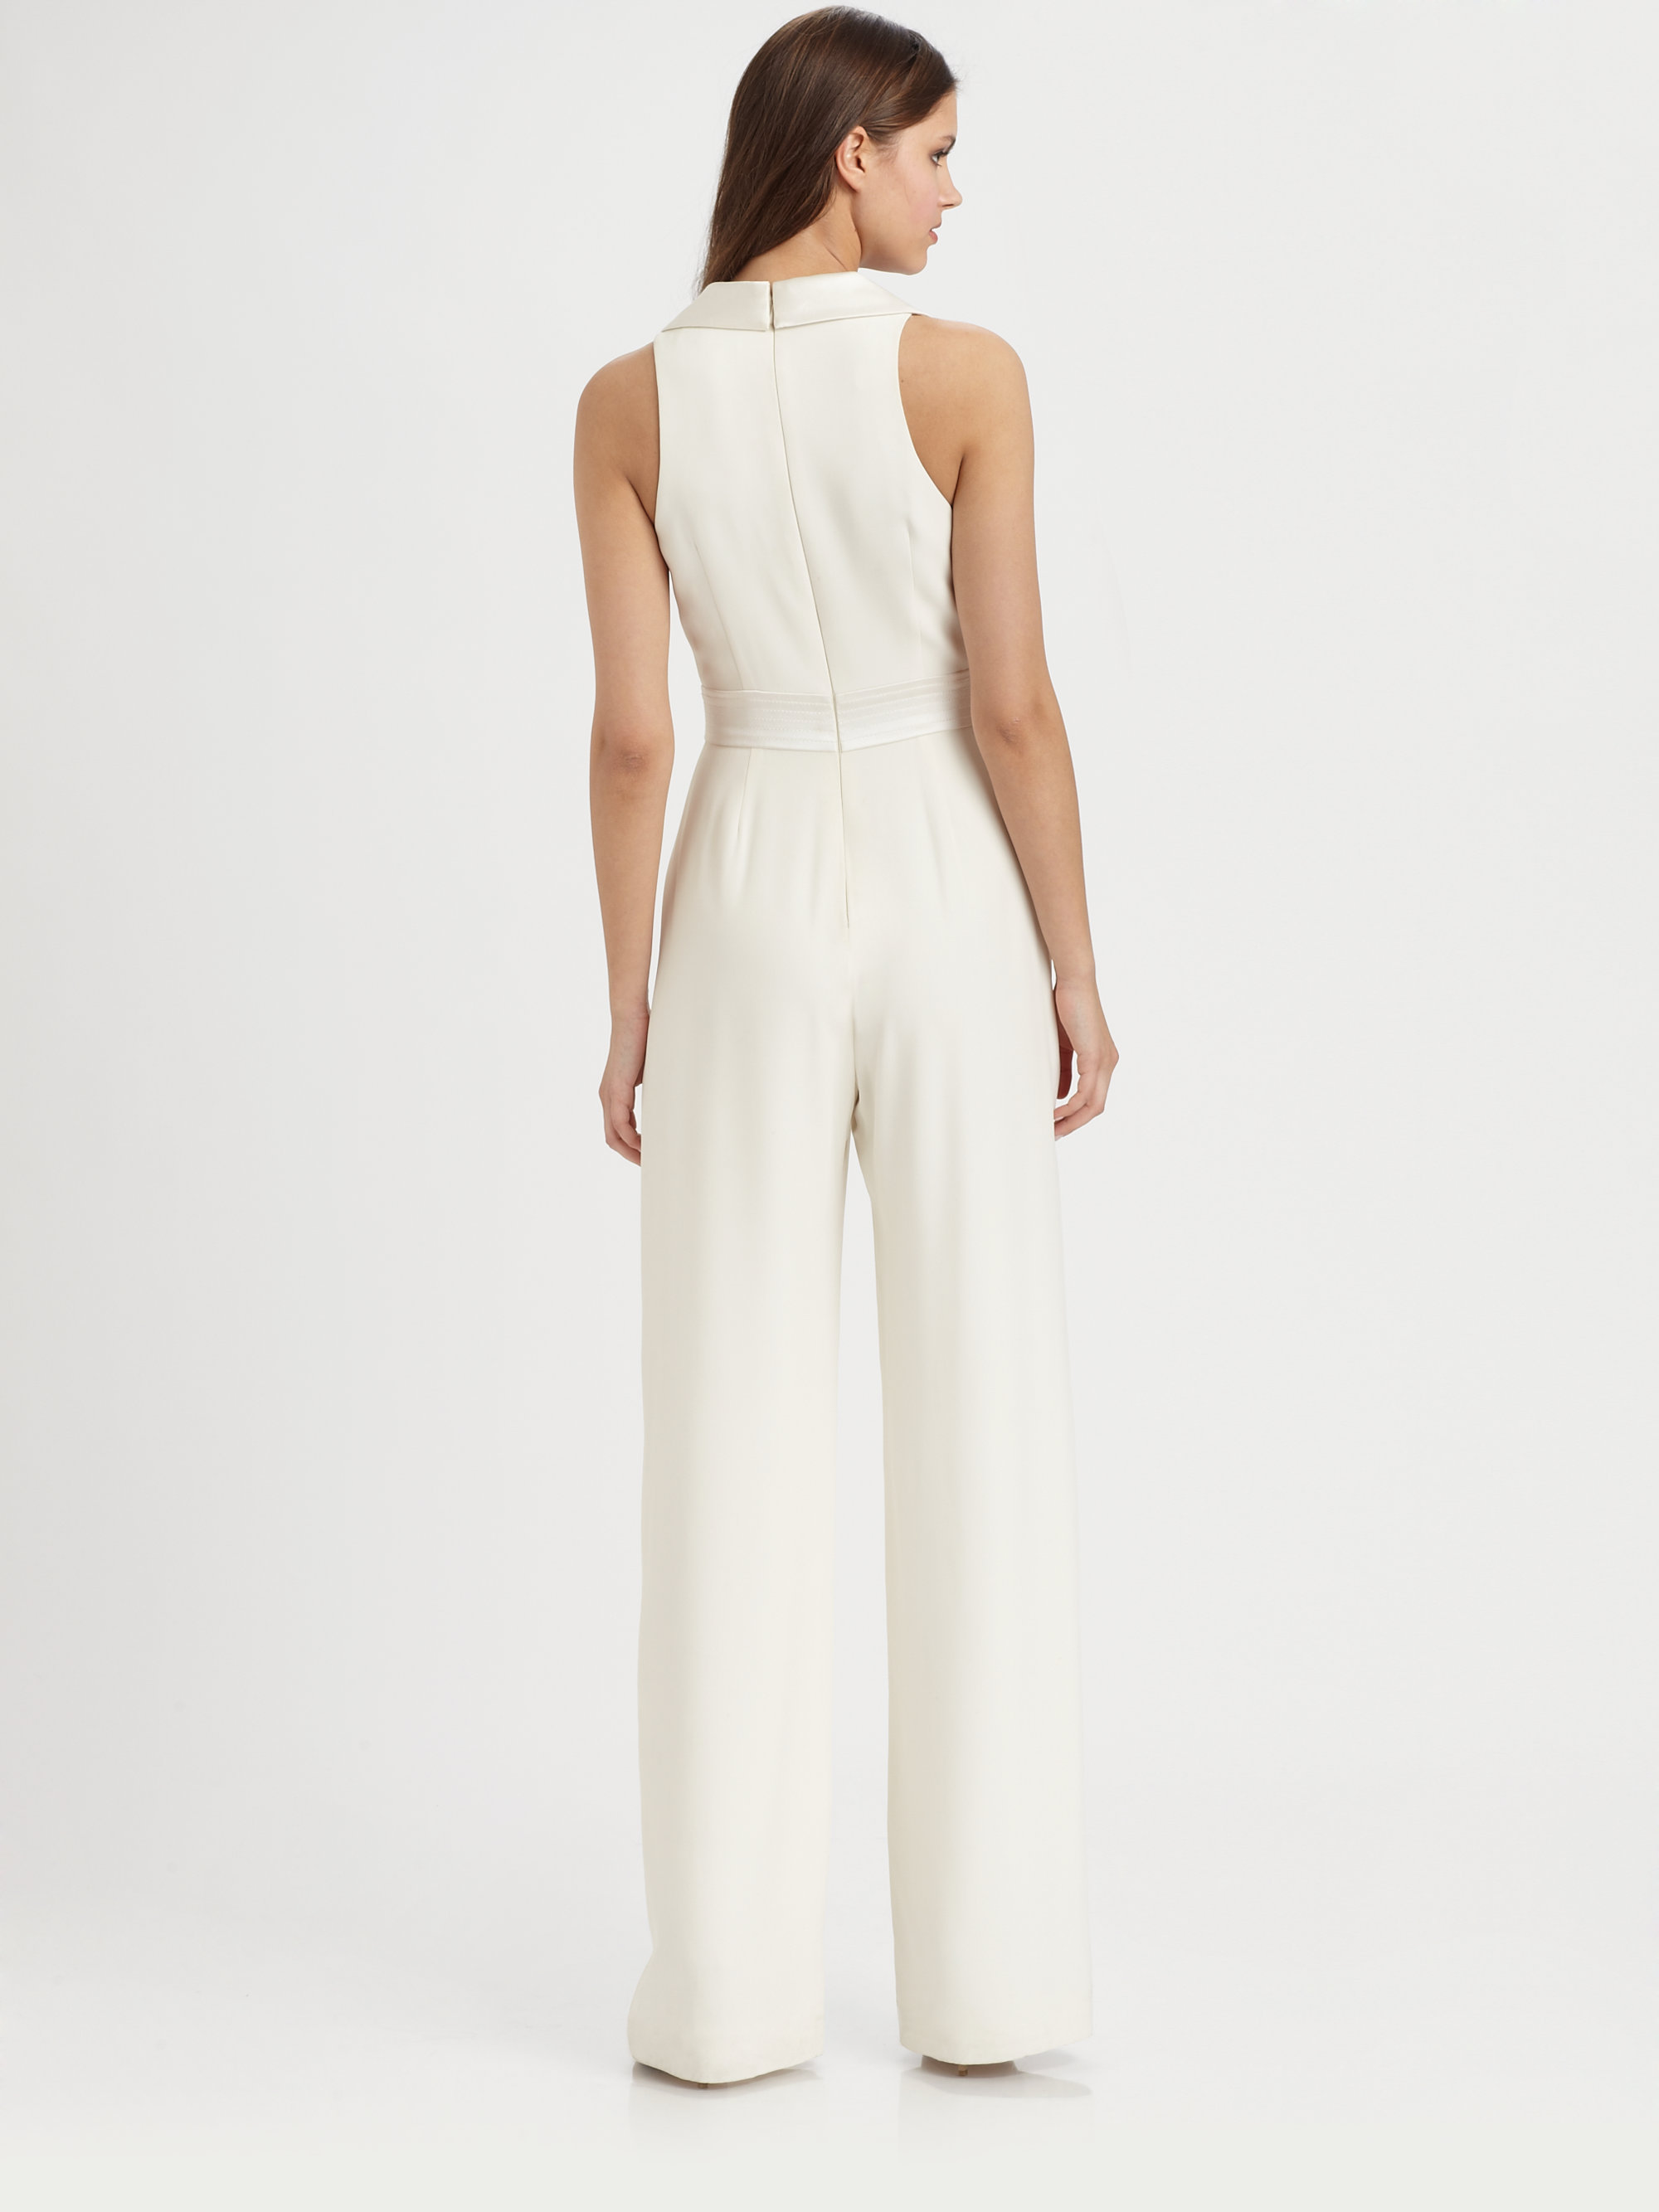 Theia Sleeveless Silk Jumpsuit in White | Lyst